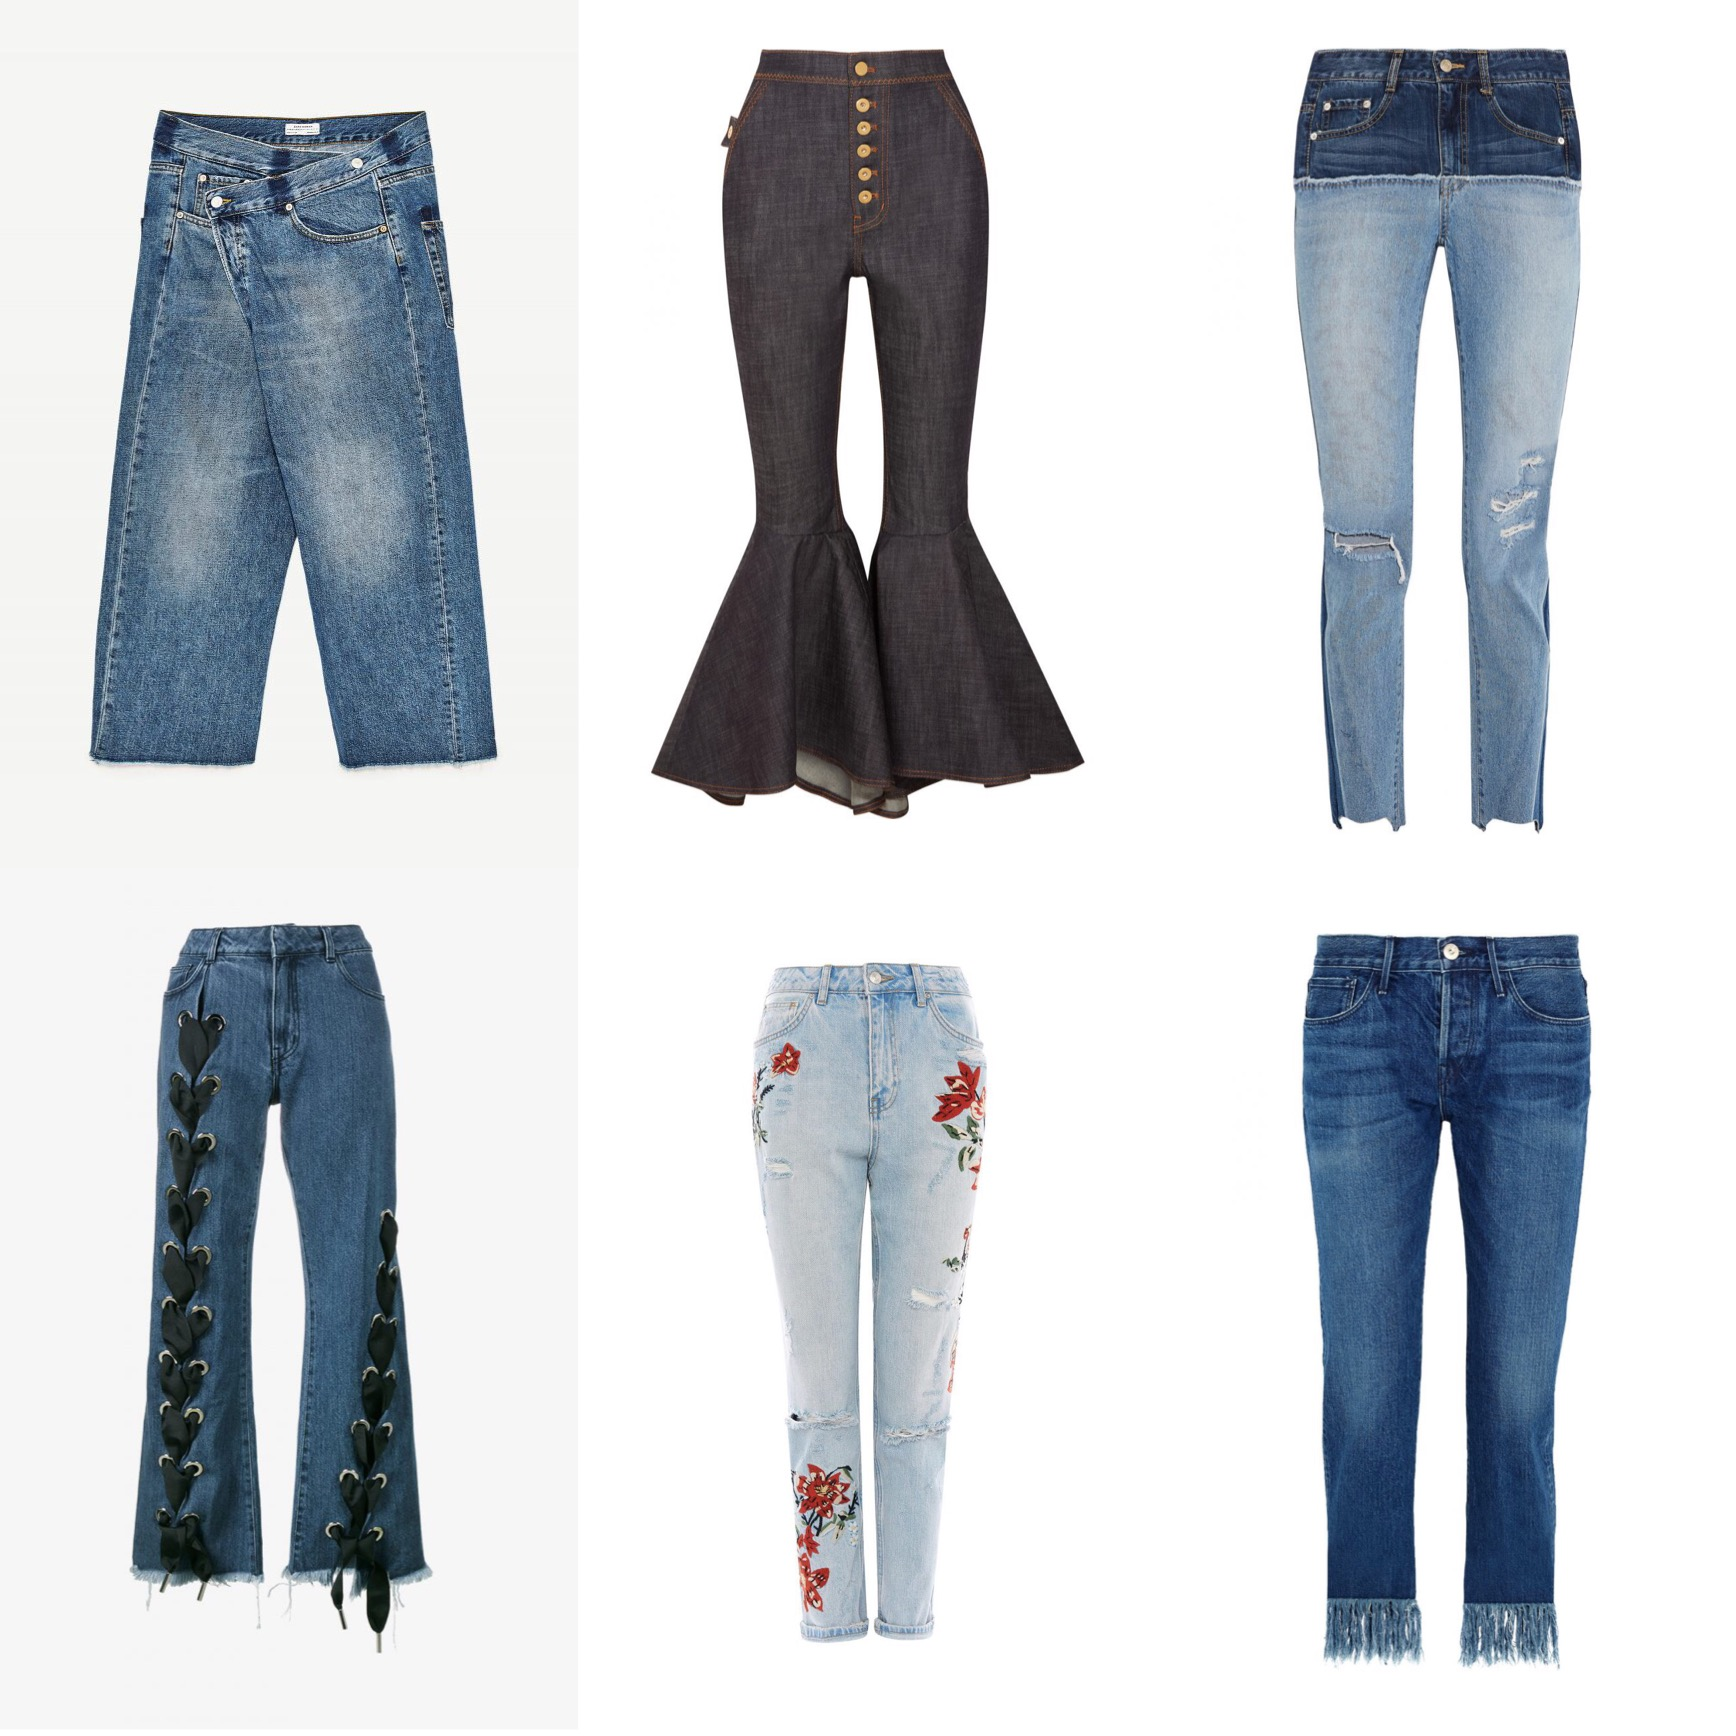 DENIM MUST HAVES FOR SPRING!